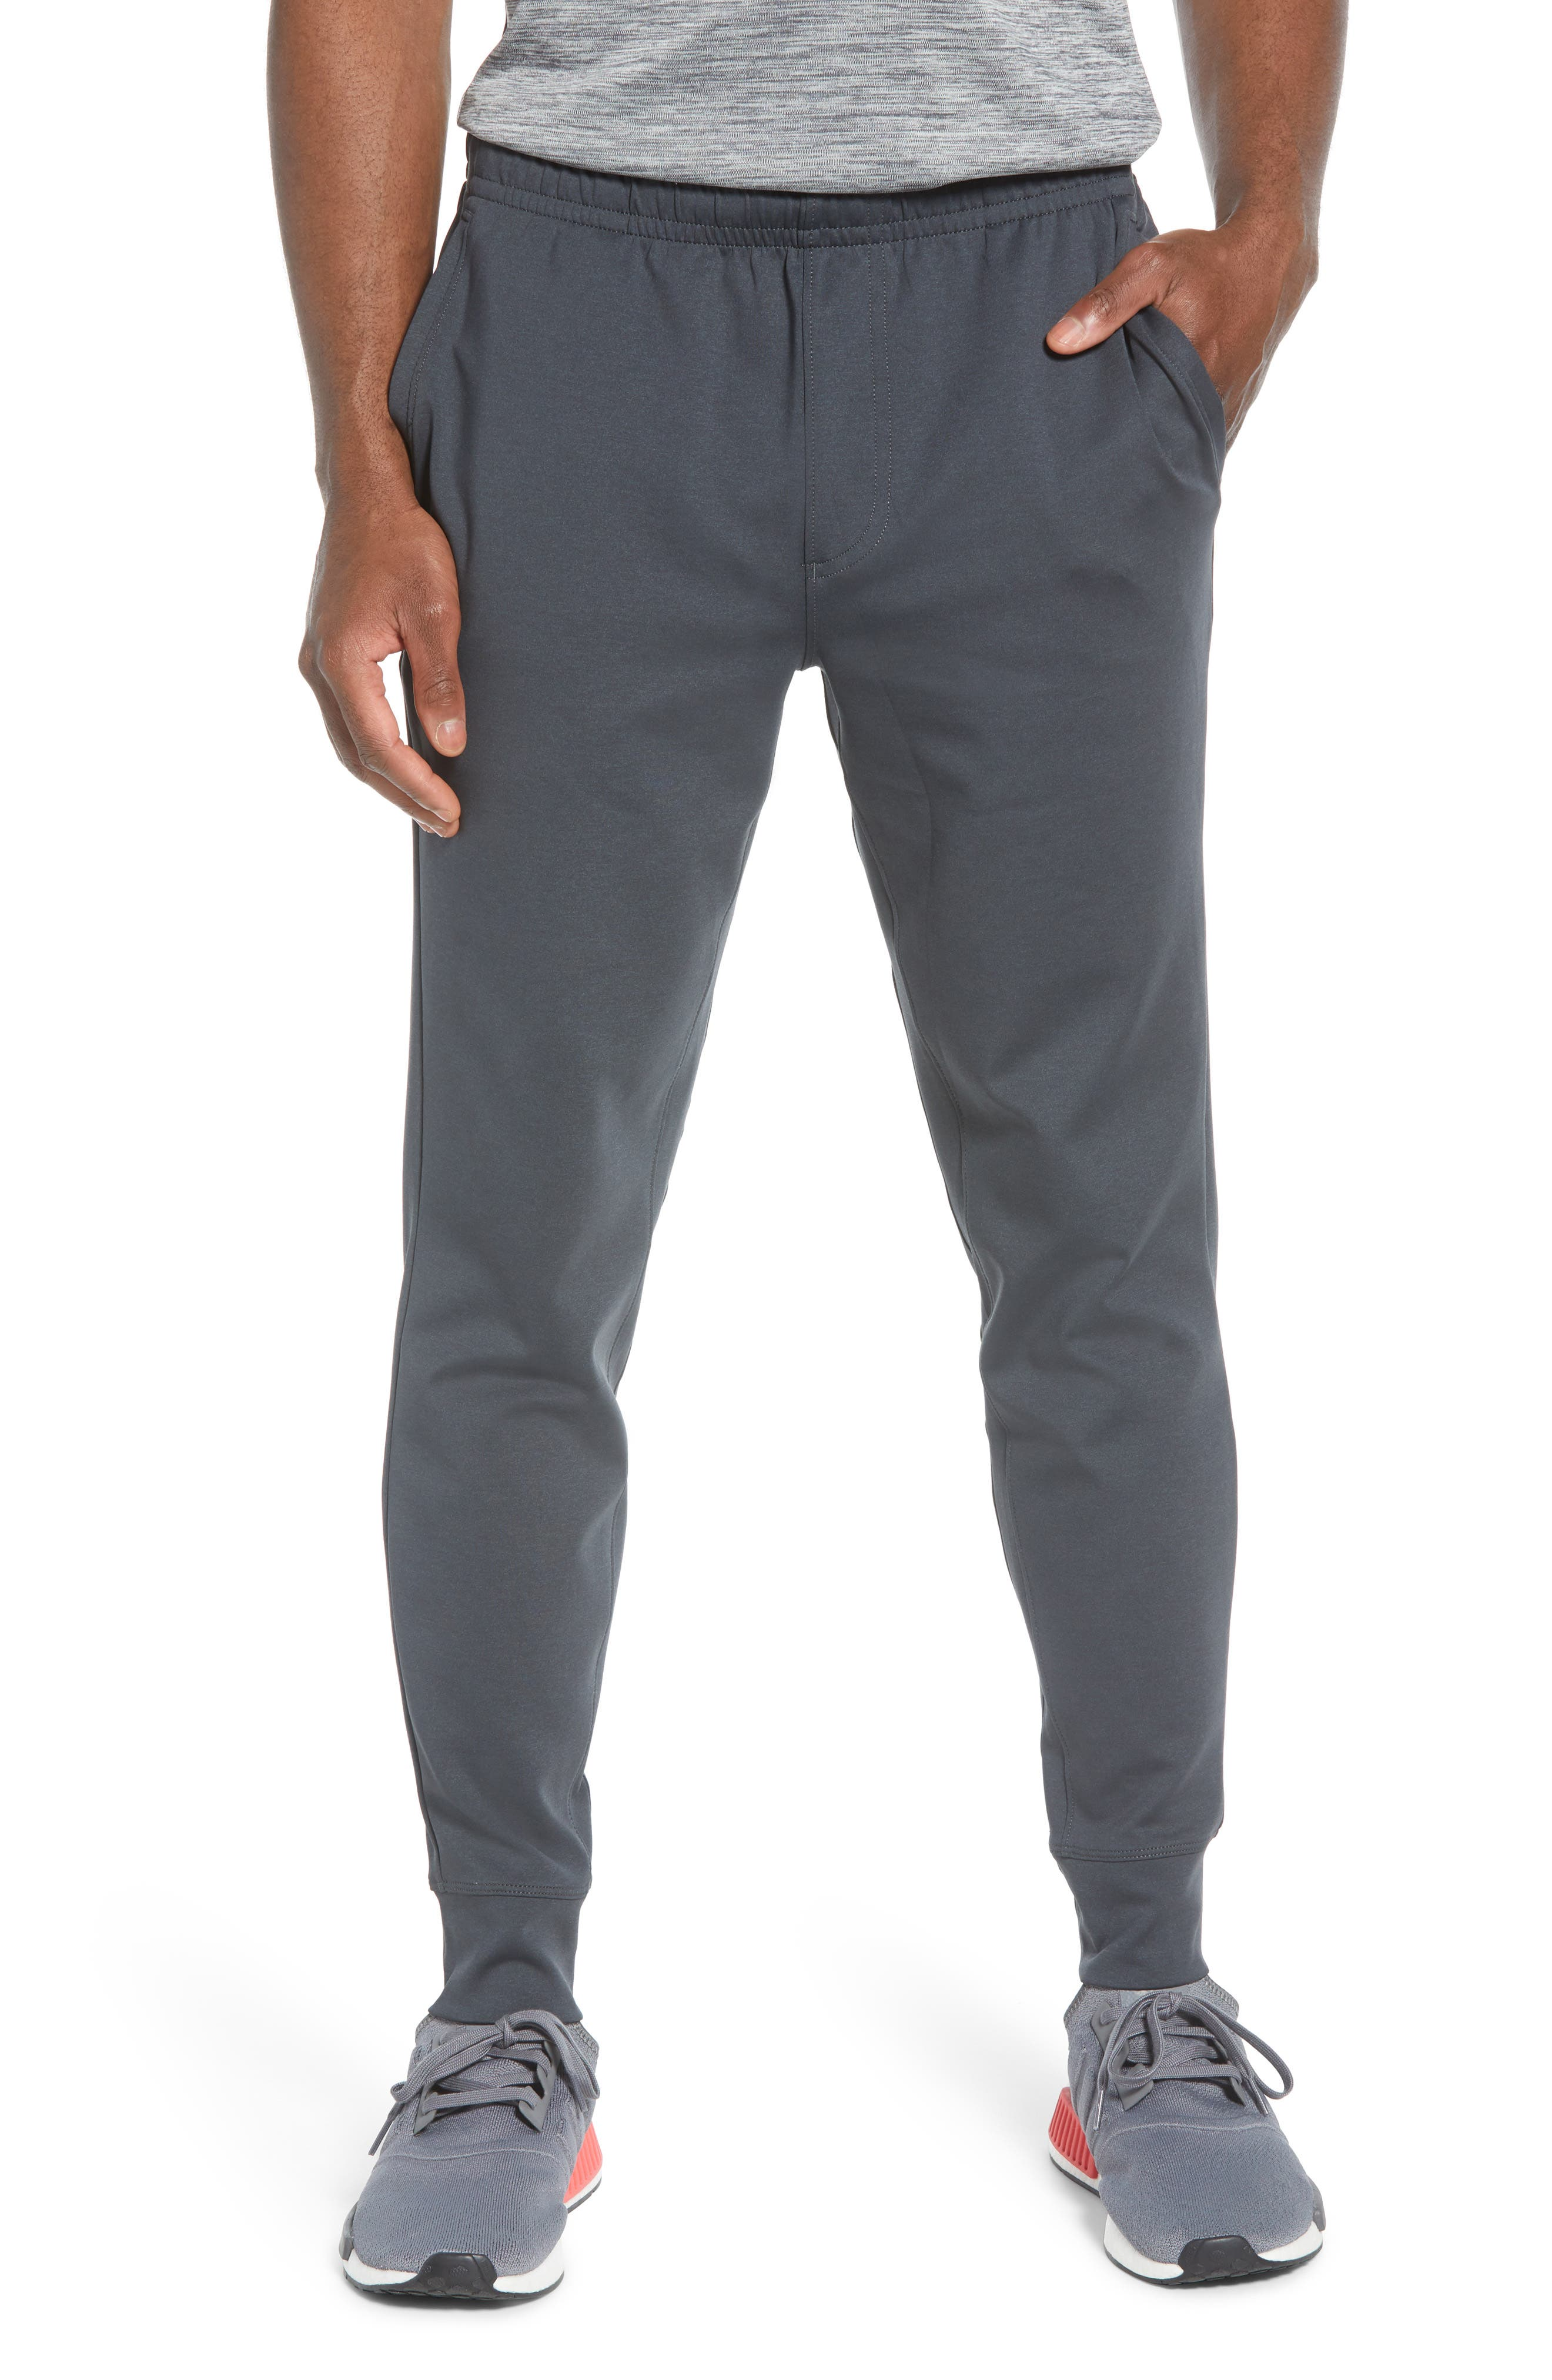 Leisurely tapered-fit joggers provide a lightweight feel to keep you going in stride with a back zip pocket securing your personal items. Style Name: Rhone Spar Joggers. Style Number: 5784901. Available in stores.